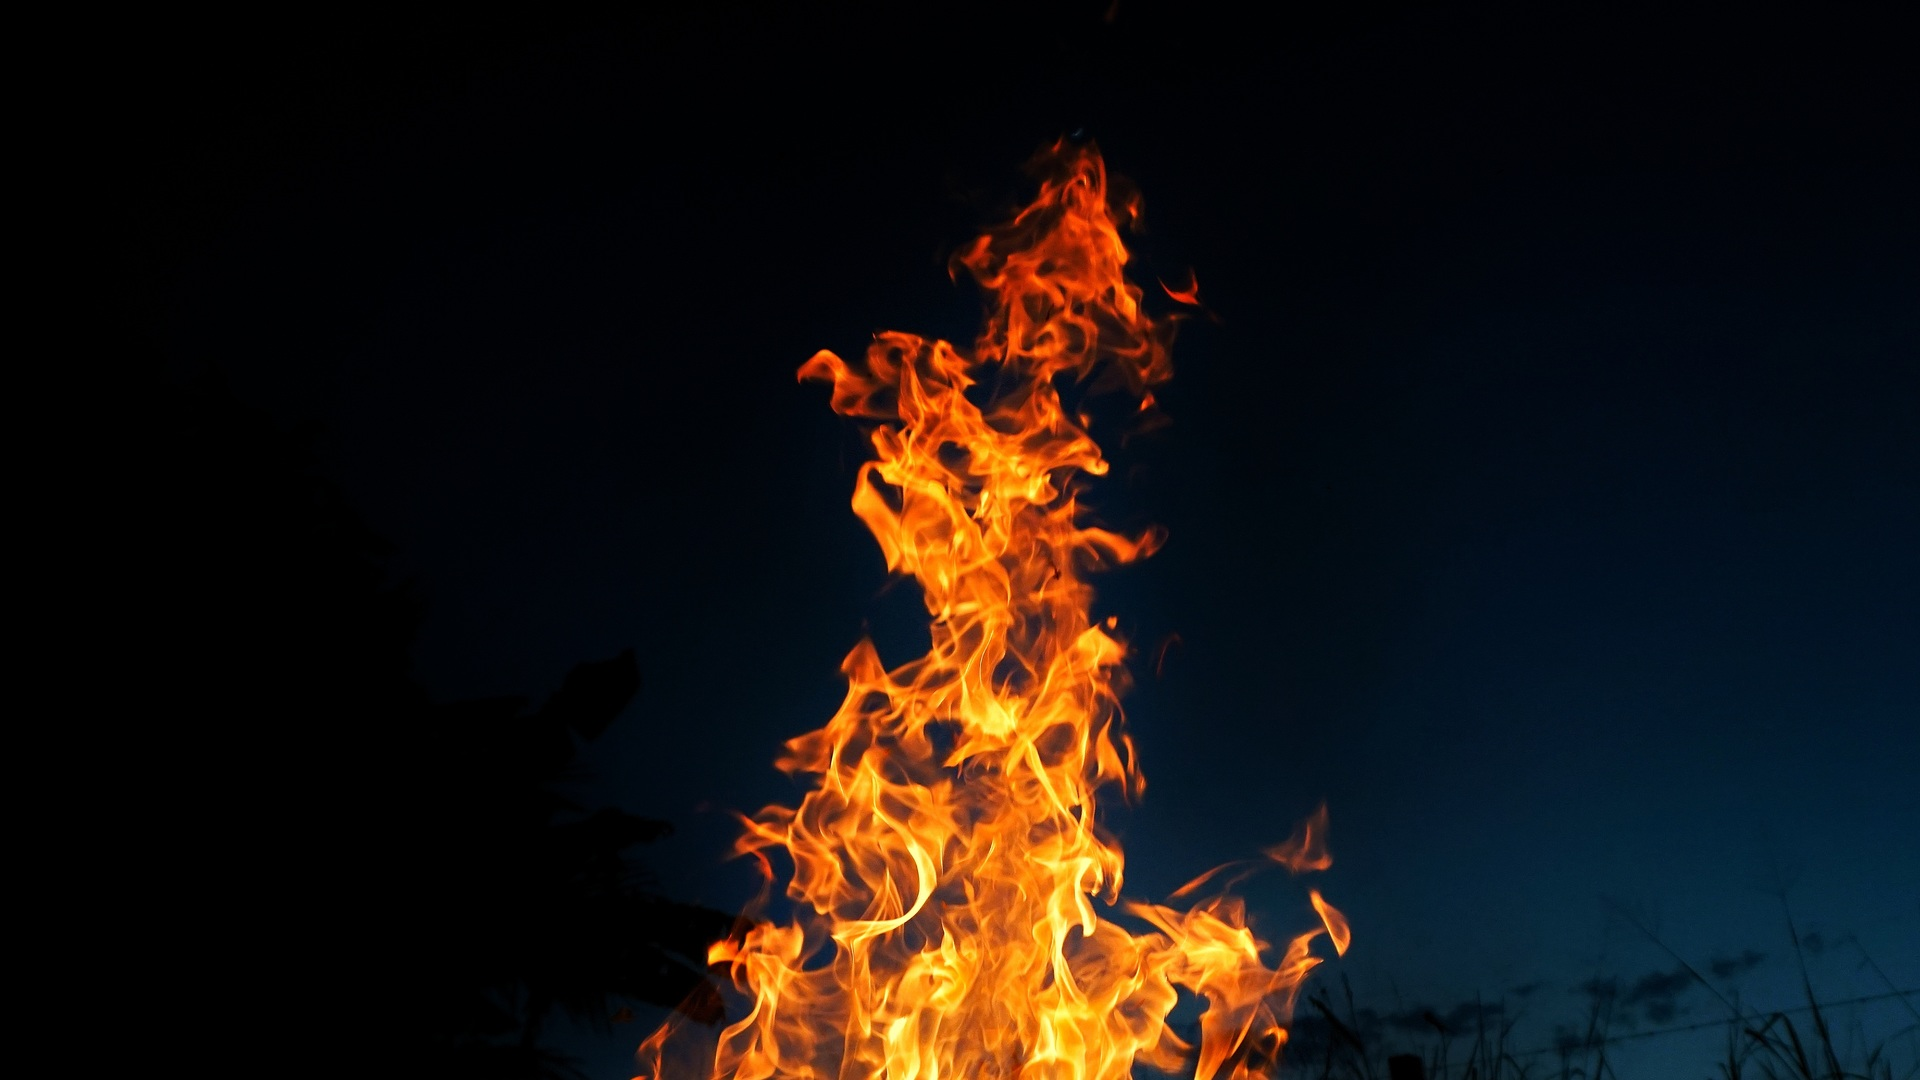 image 3 - fire